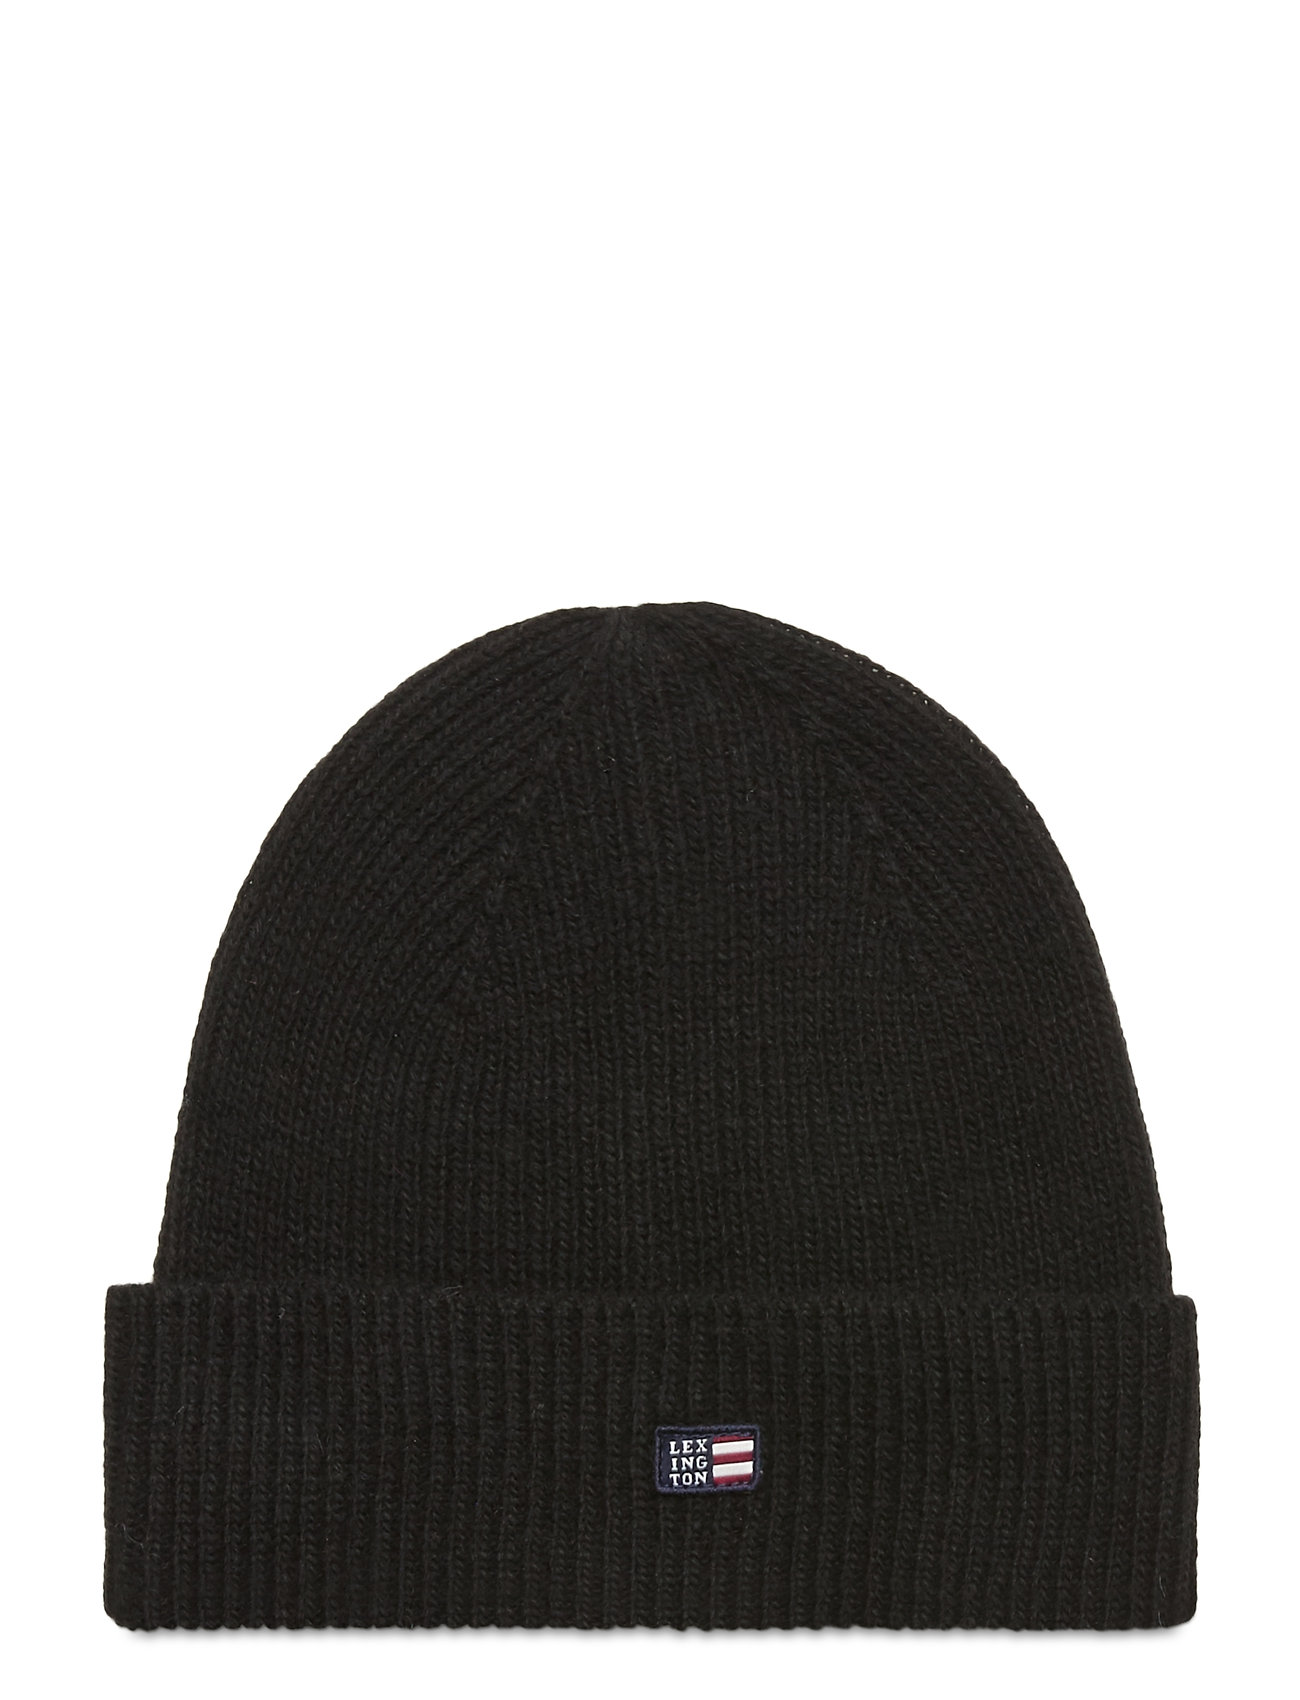 Image of Stockton Lambswool Beanie Accessories Headwear Beanies Sort Lexington Clothing (3486935065)